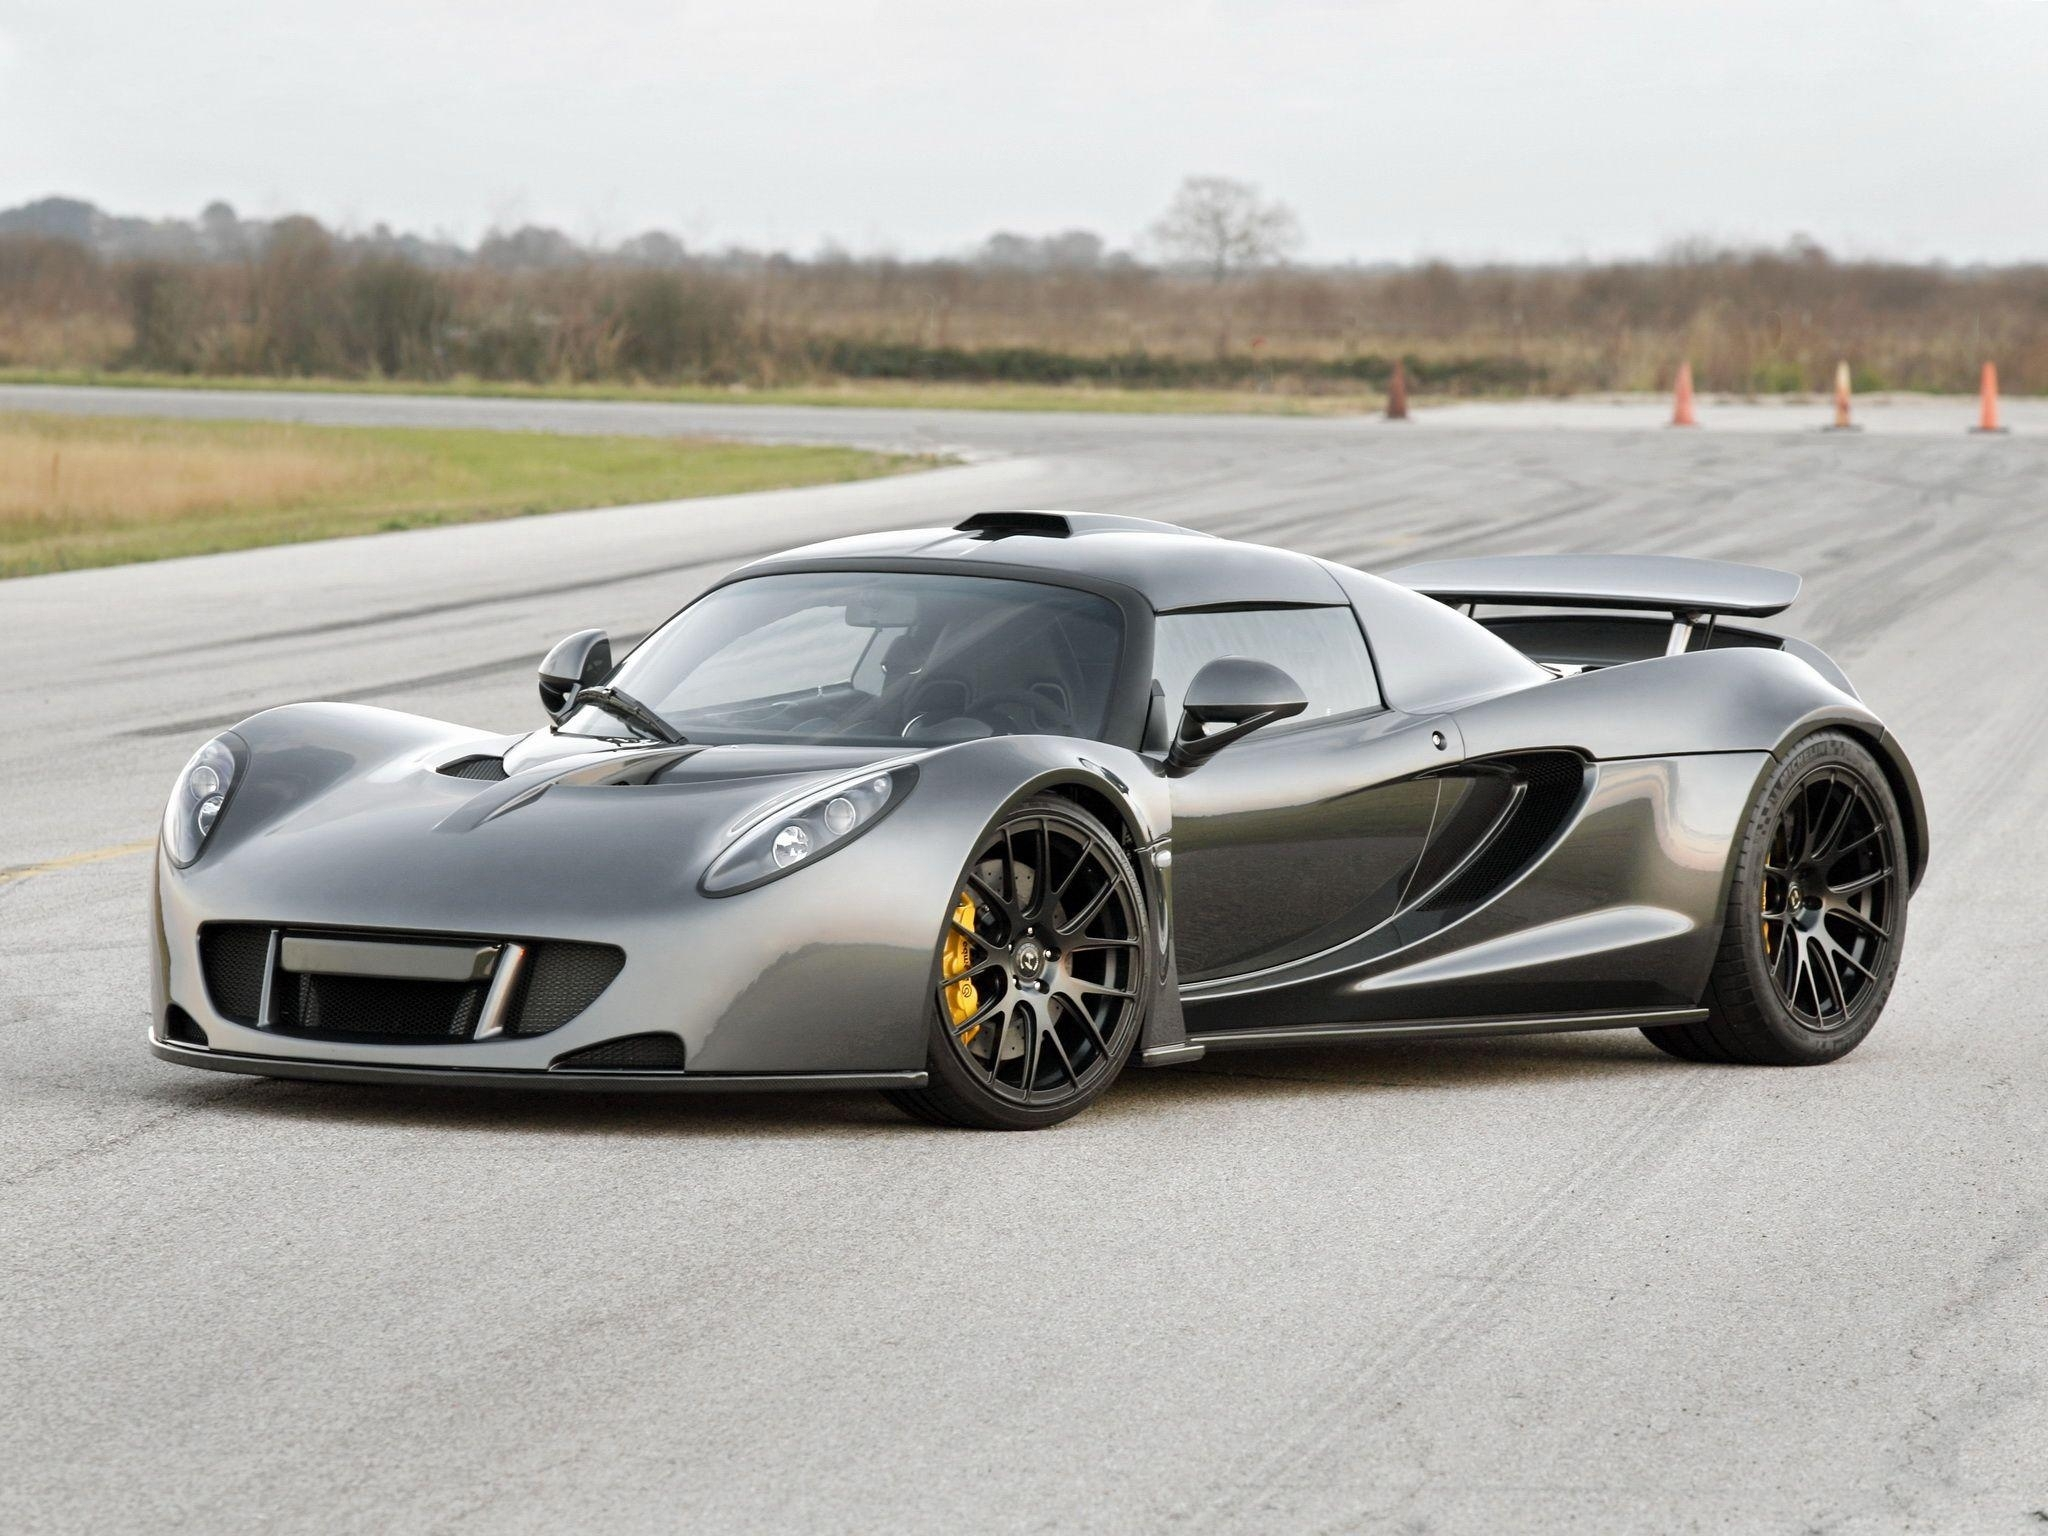 hennessey venom gt spyder wallpapers - wallpaper cave